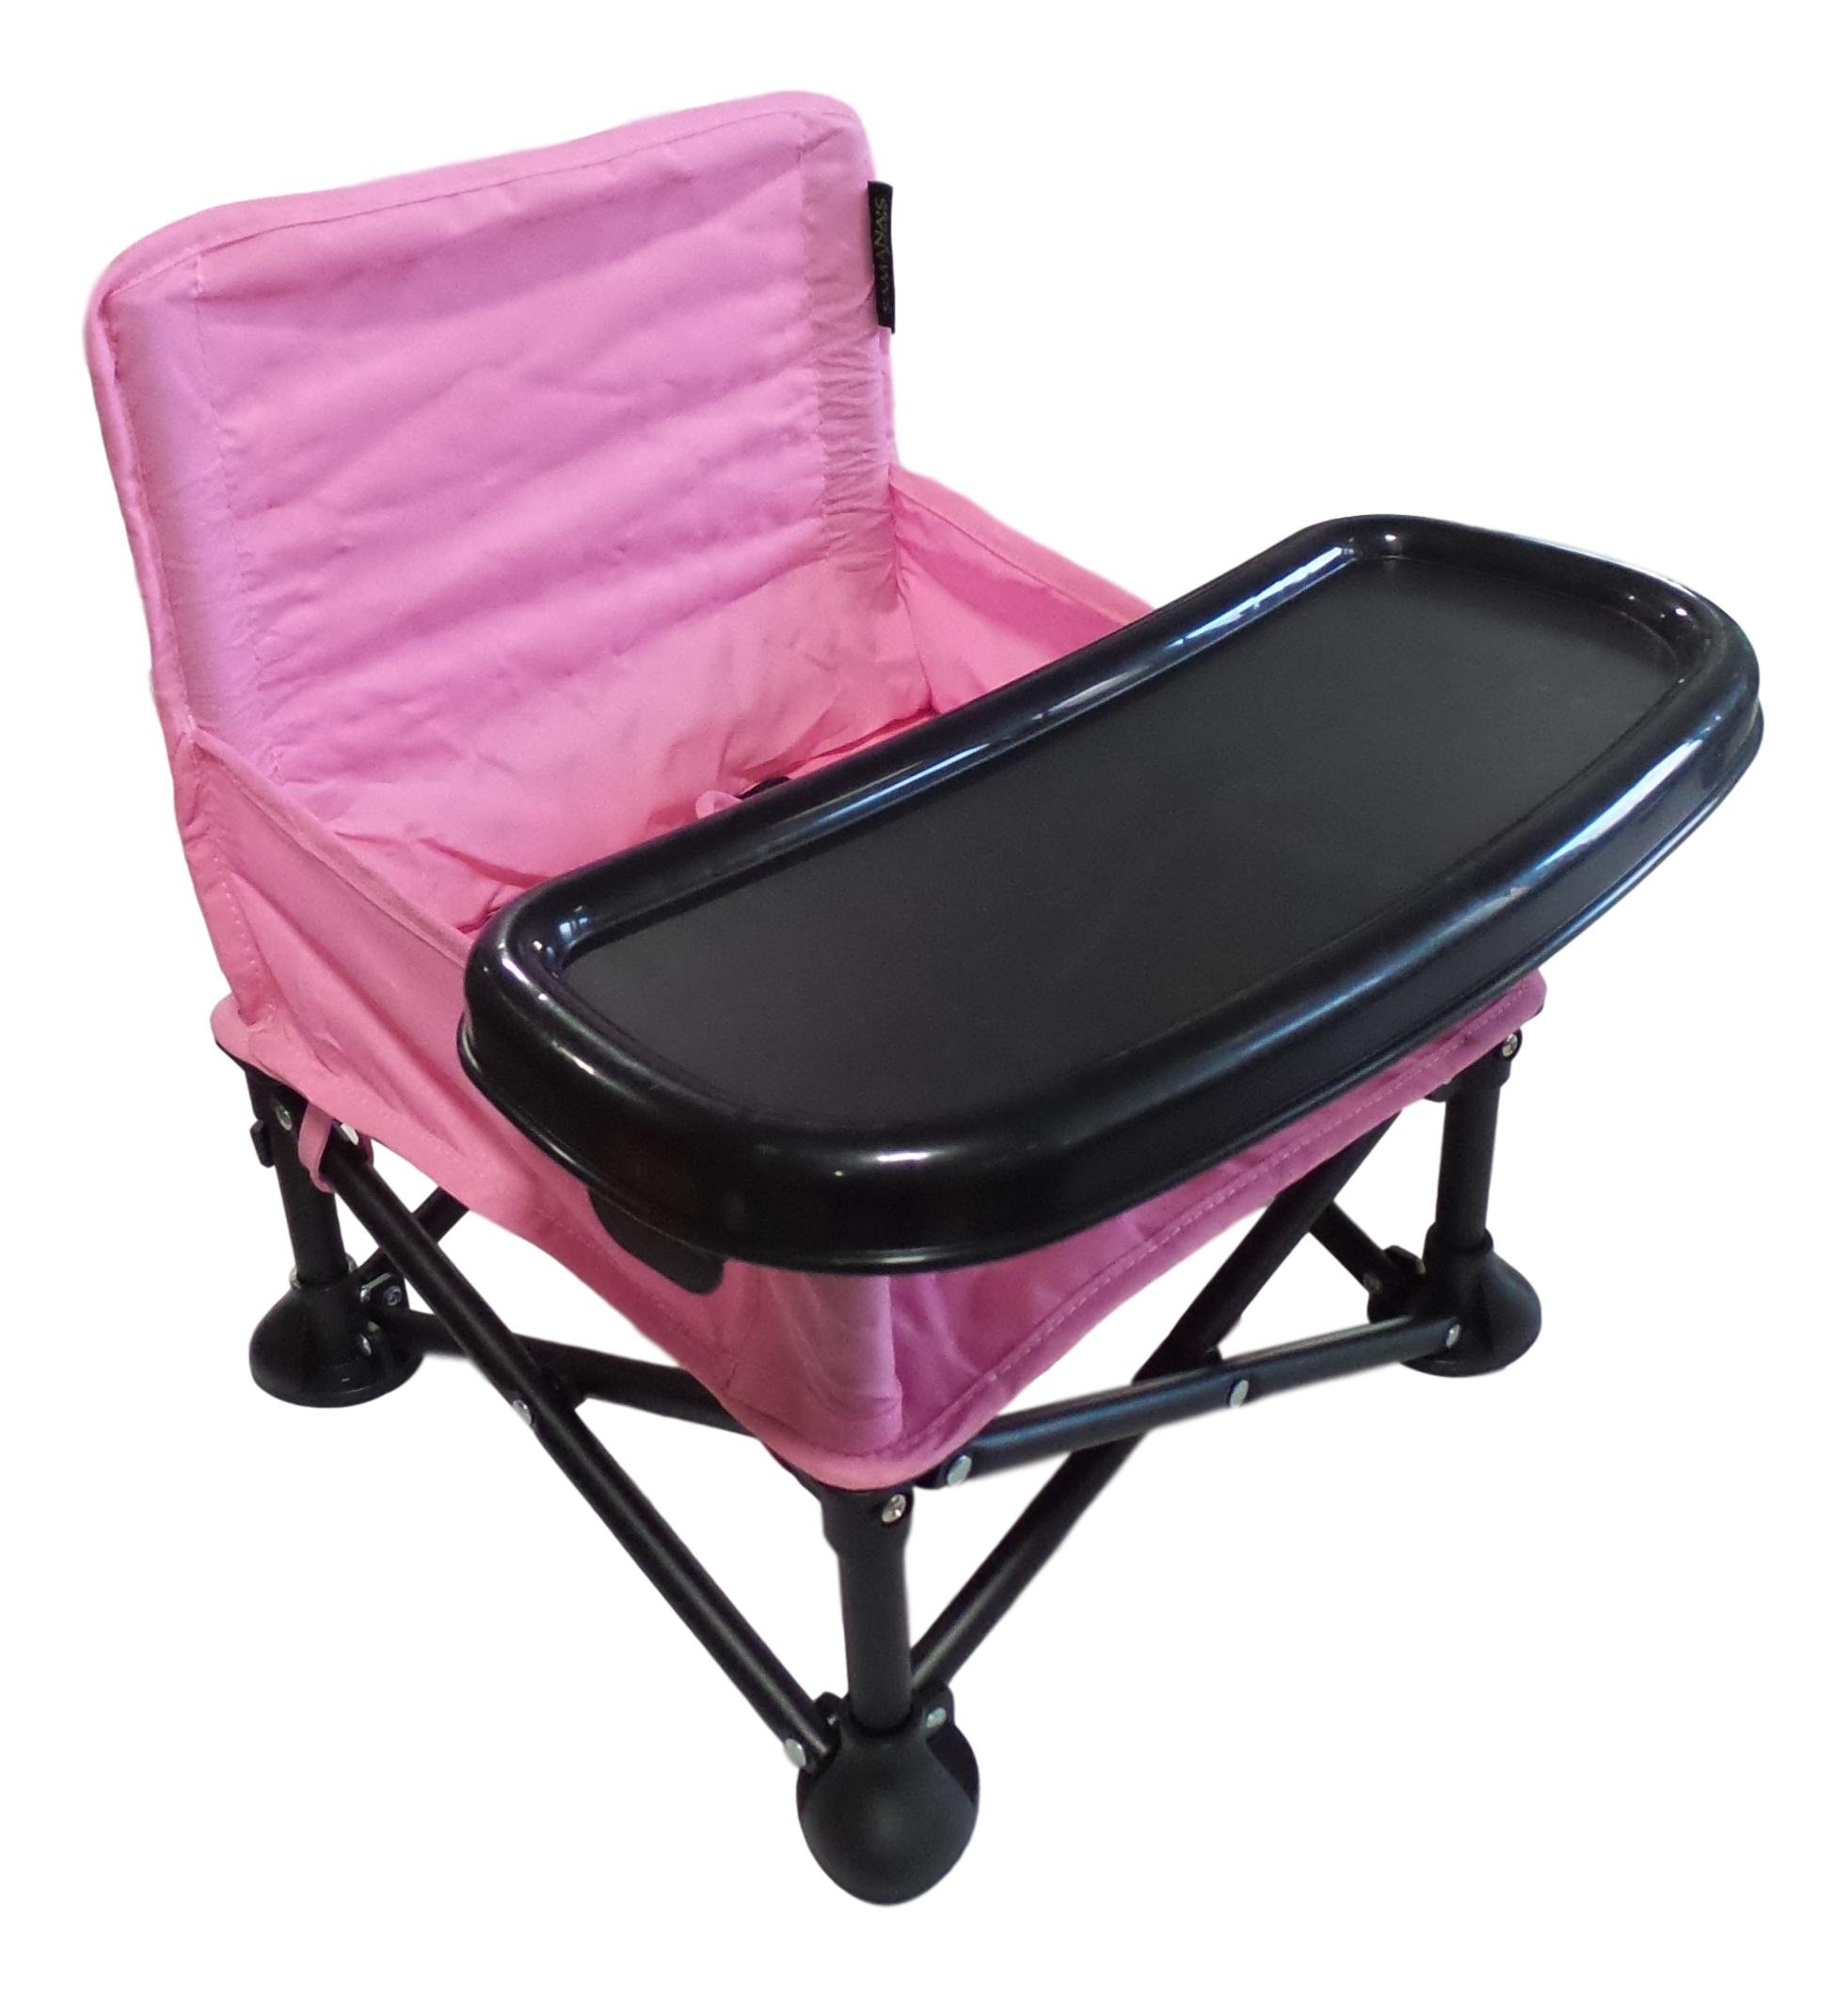 Samana's Goods Portable Baby Booster Seat, Folding Baby Chair with Tray and Carrying Bag for Indoor or Outdoor Feeding Time or Playtime by (Pink) by Samana's Goods